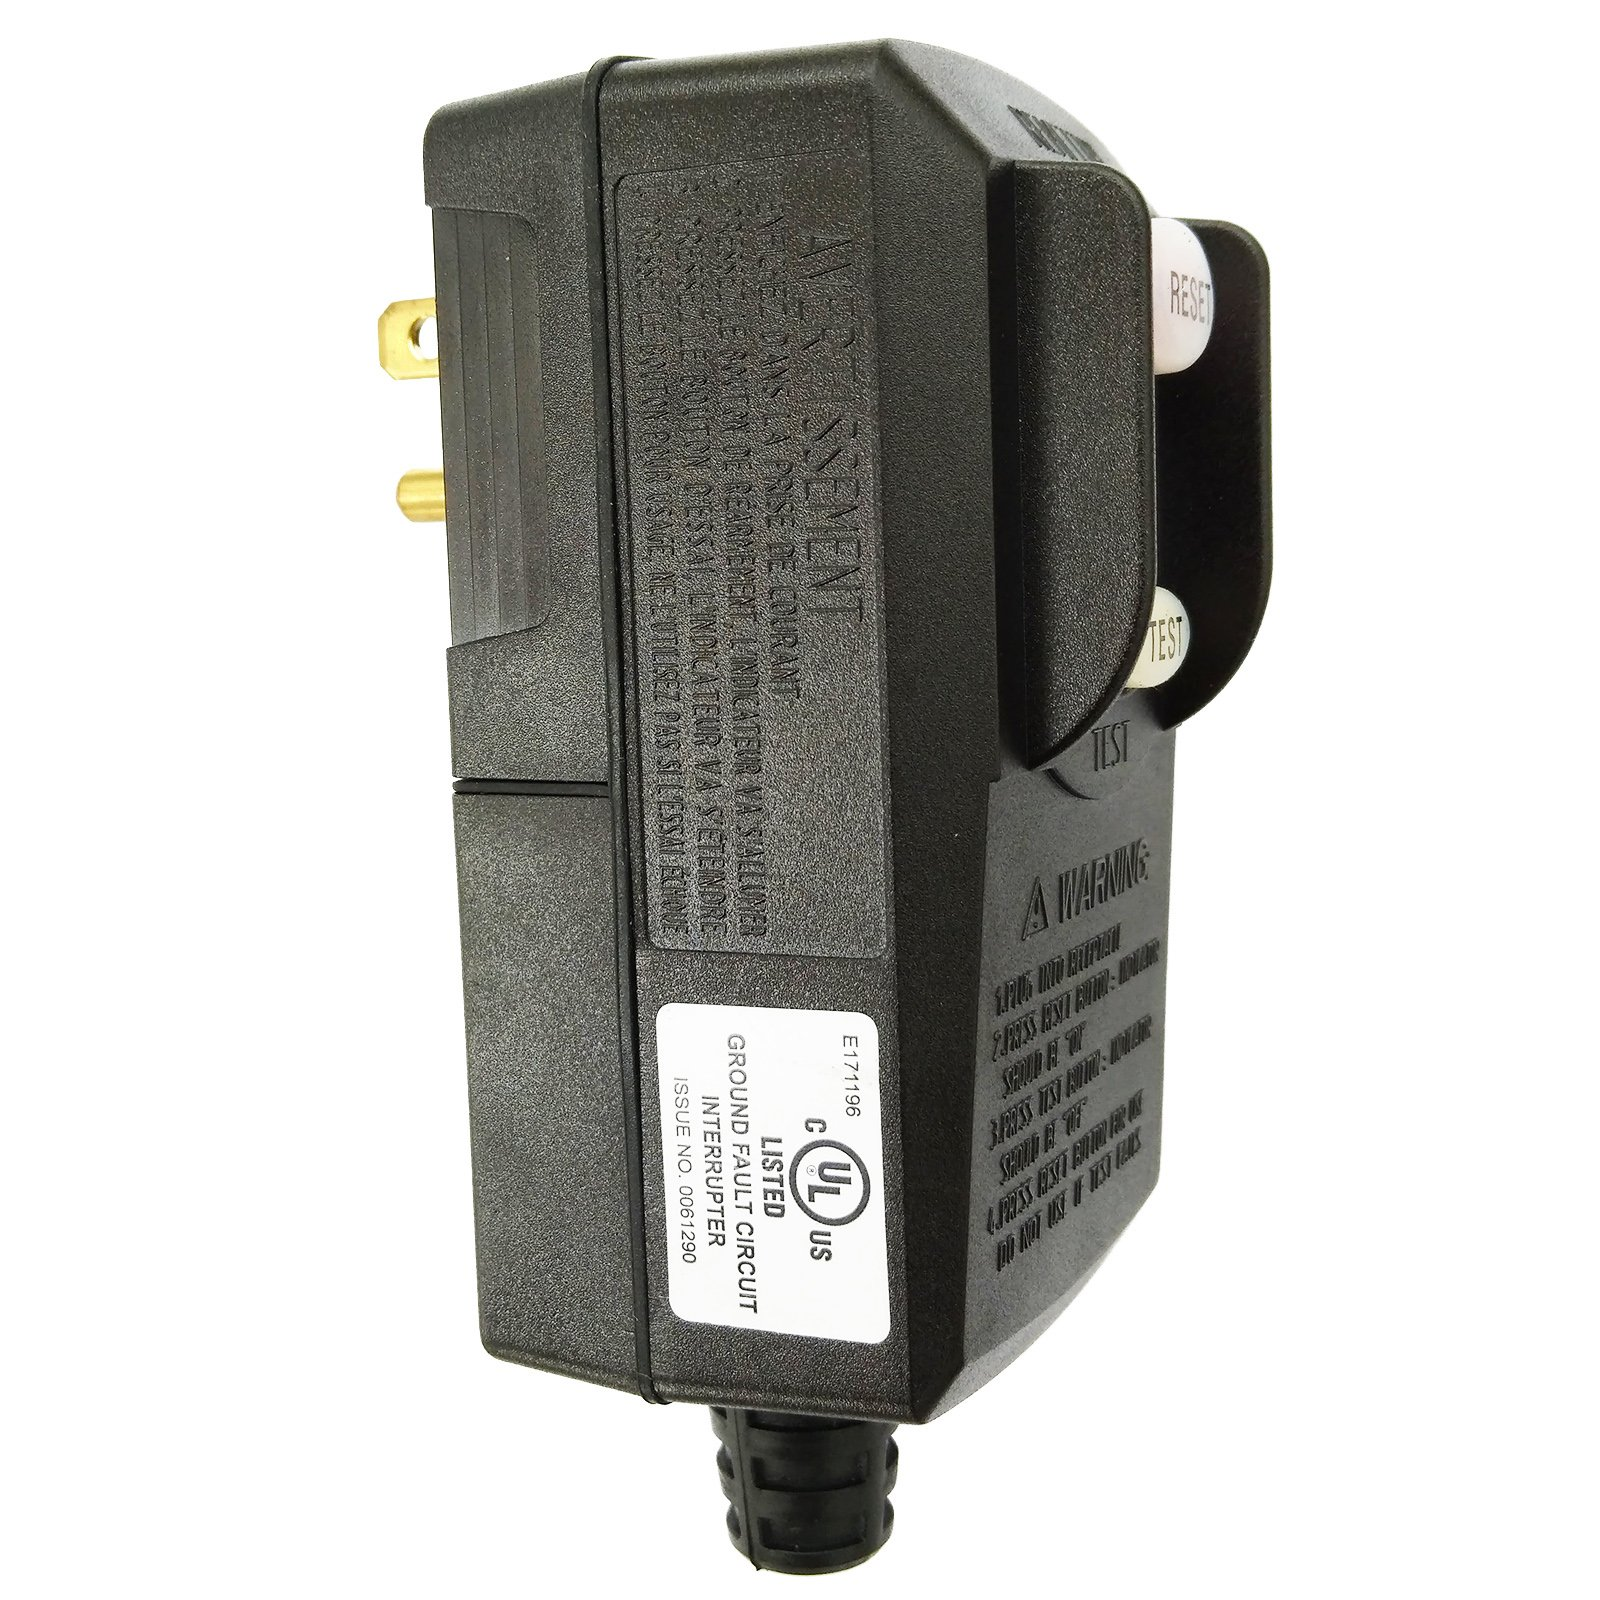 GFCI Replacement Plug Earth Leakage Circuit Breaker UL Listed RCD 120Volt 15Amp